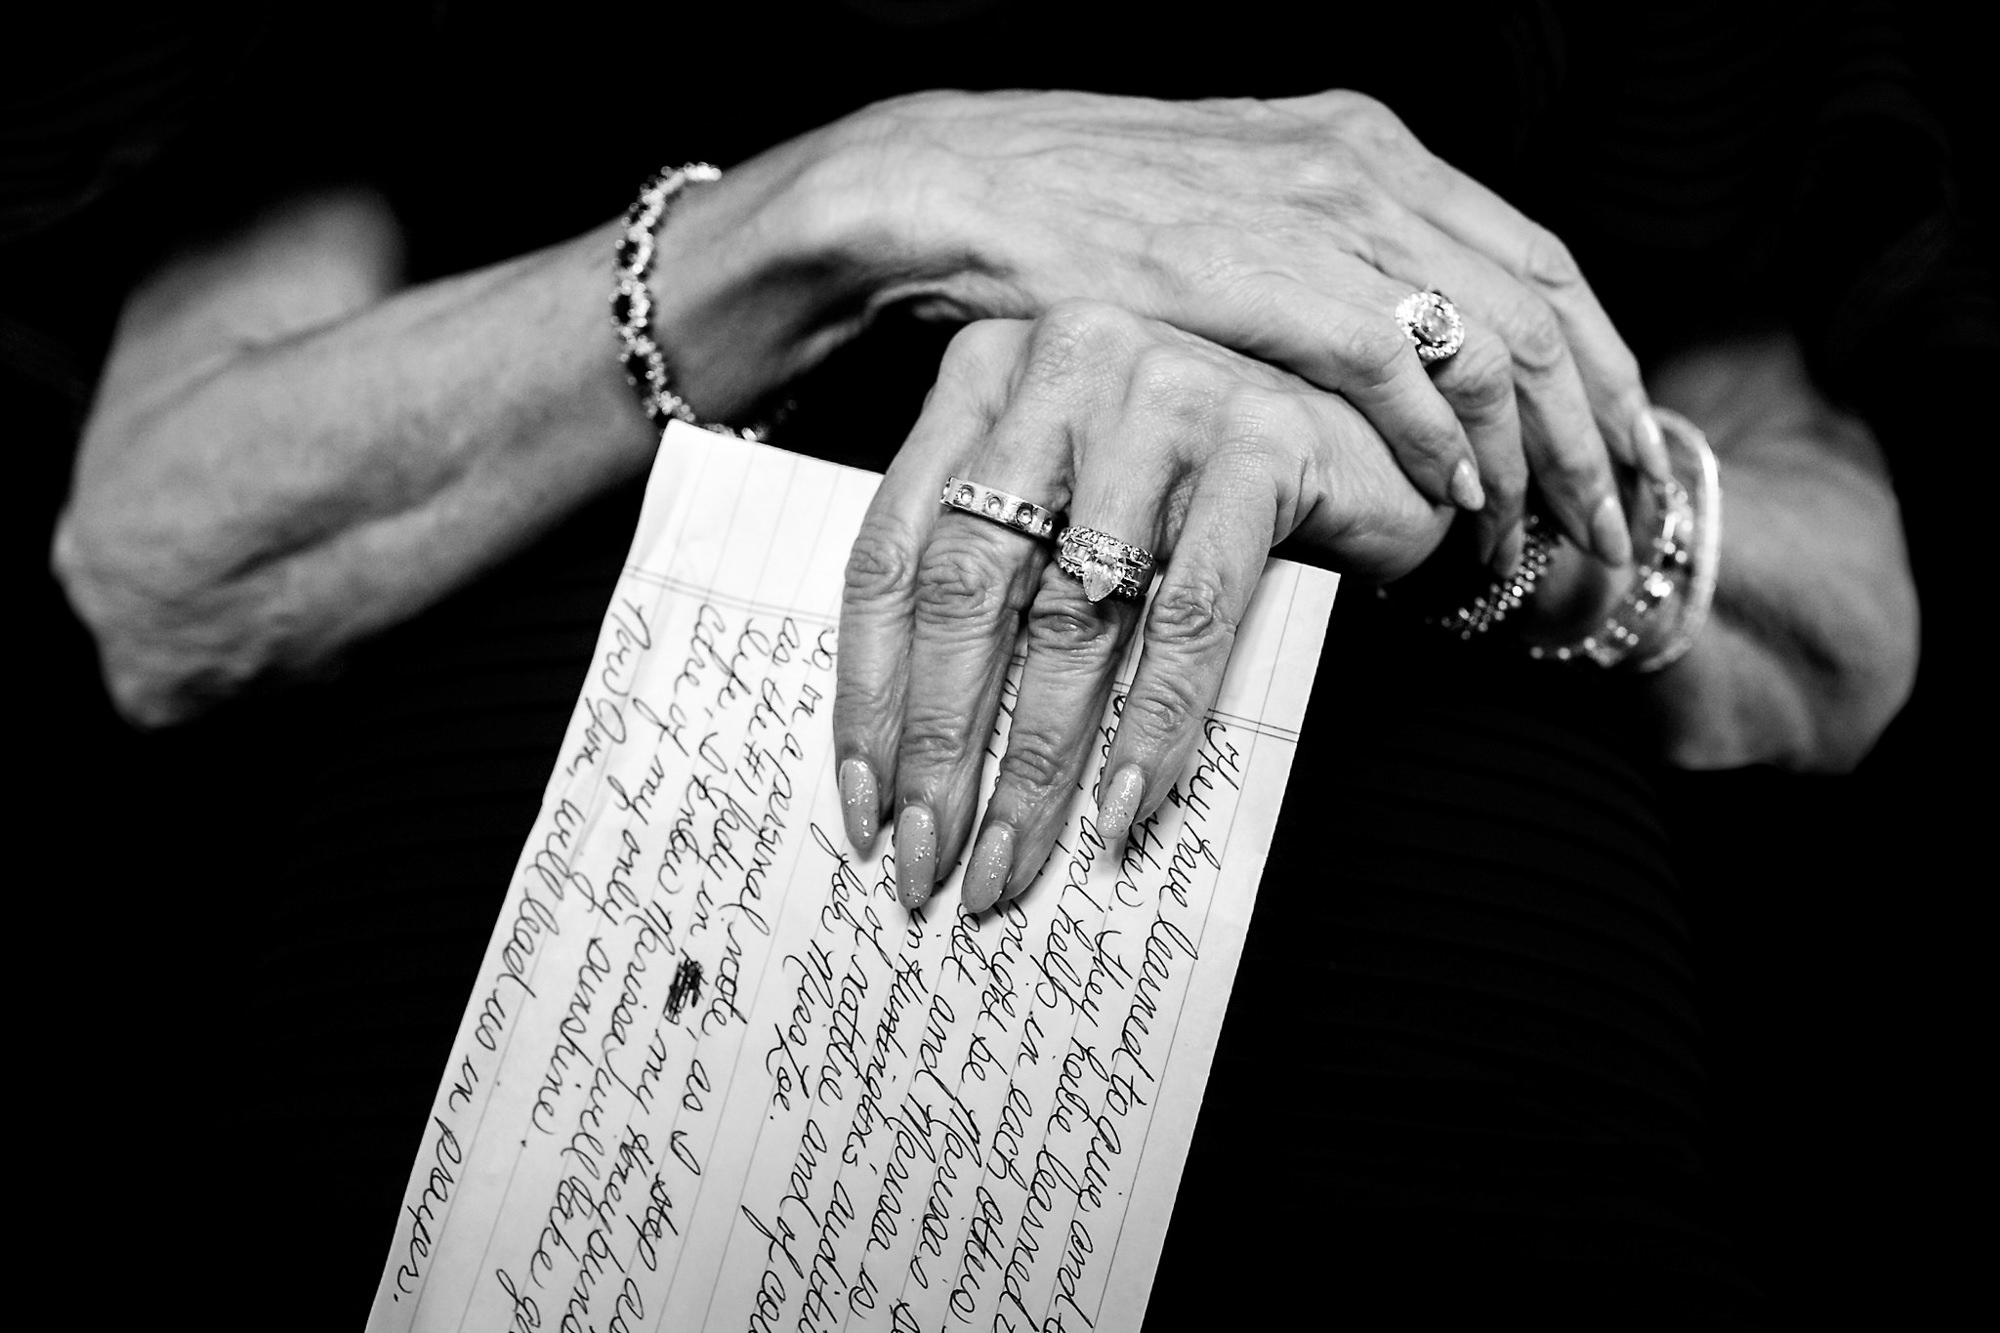 Grandmother's hands holding letter - photo by Two Mann Studios